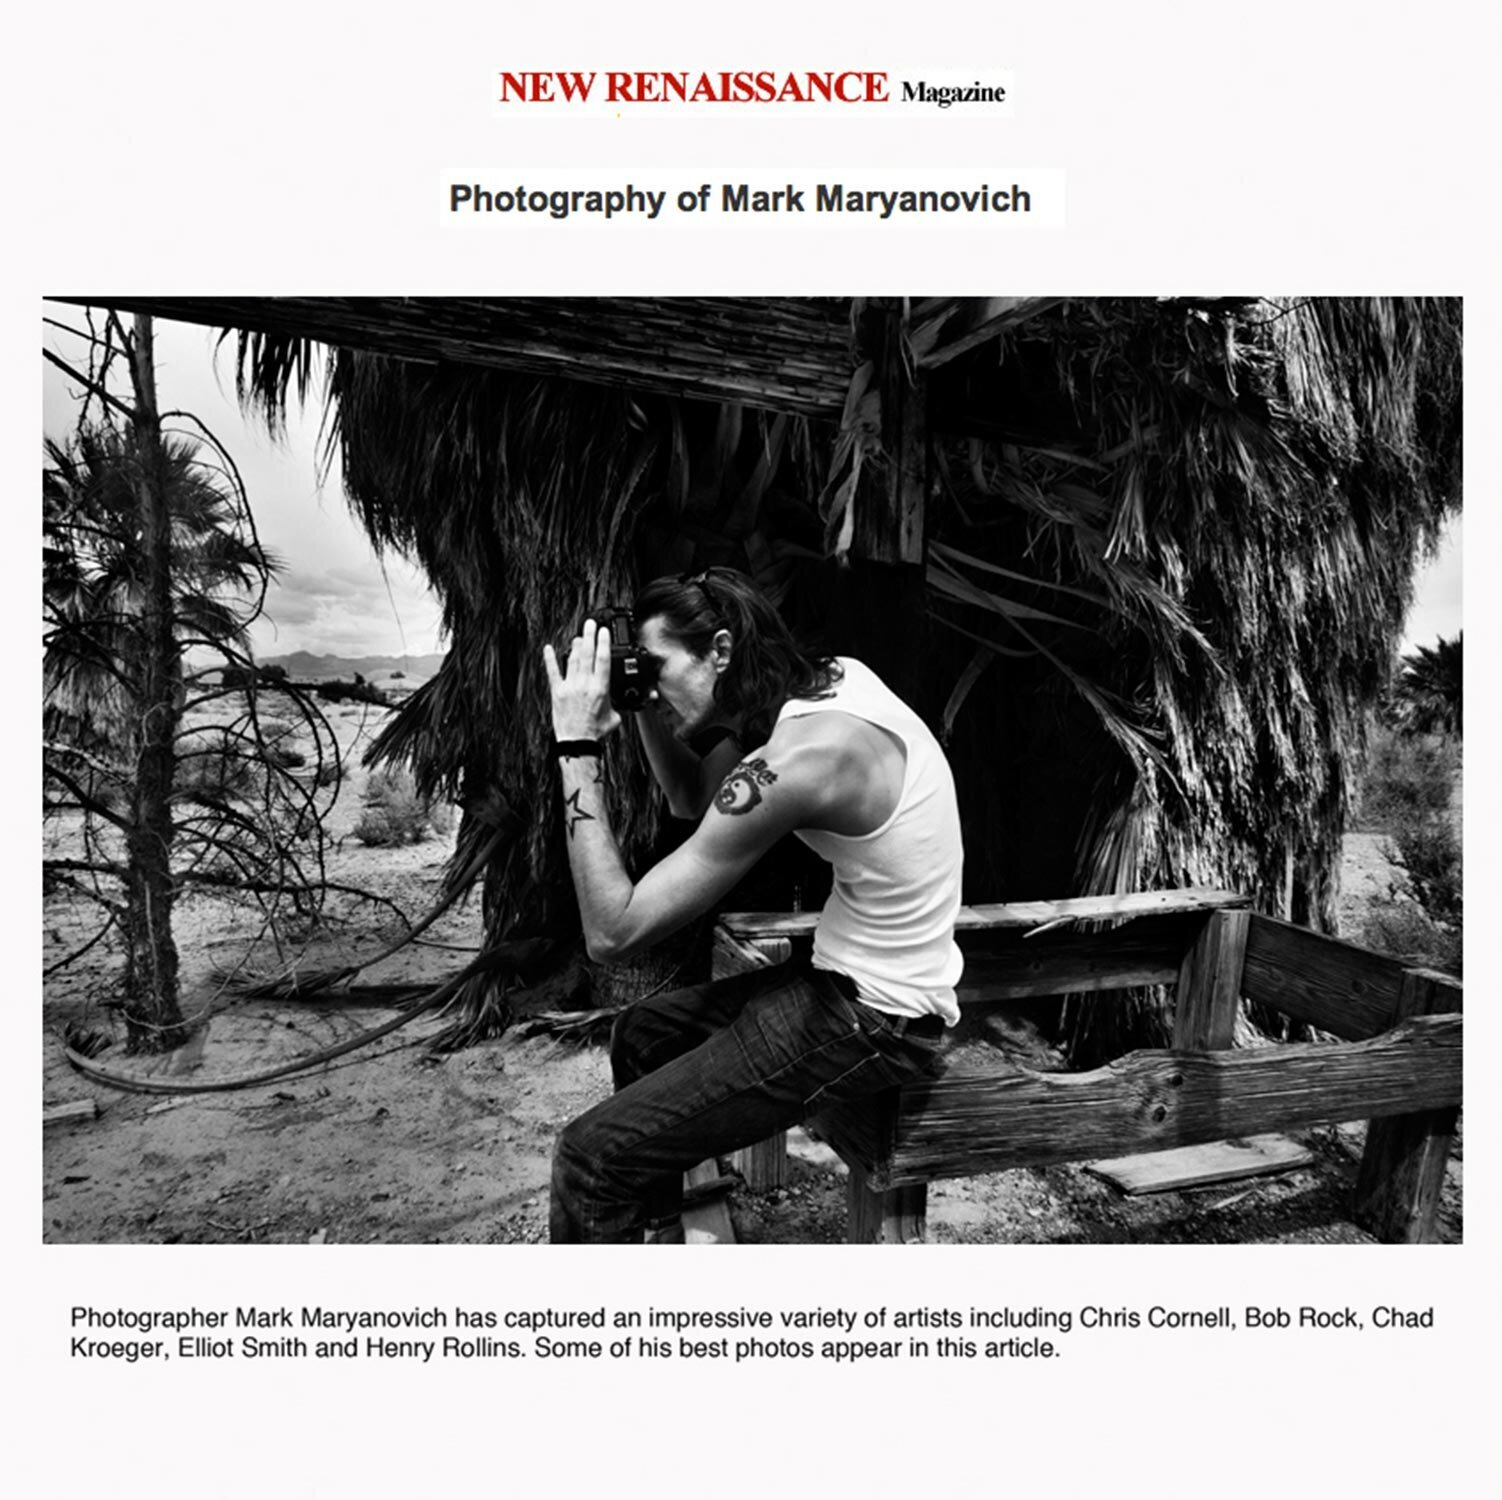 LA Photographer article Photography of Mark Maryanovich black and white behind the scenes photo looking through back of camera in desert surrounded by trees and sitting on wood structure Publication New Renaissance Magazine page 1